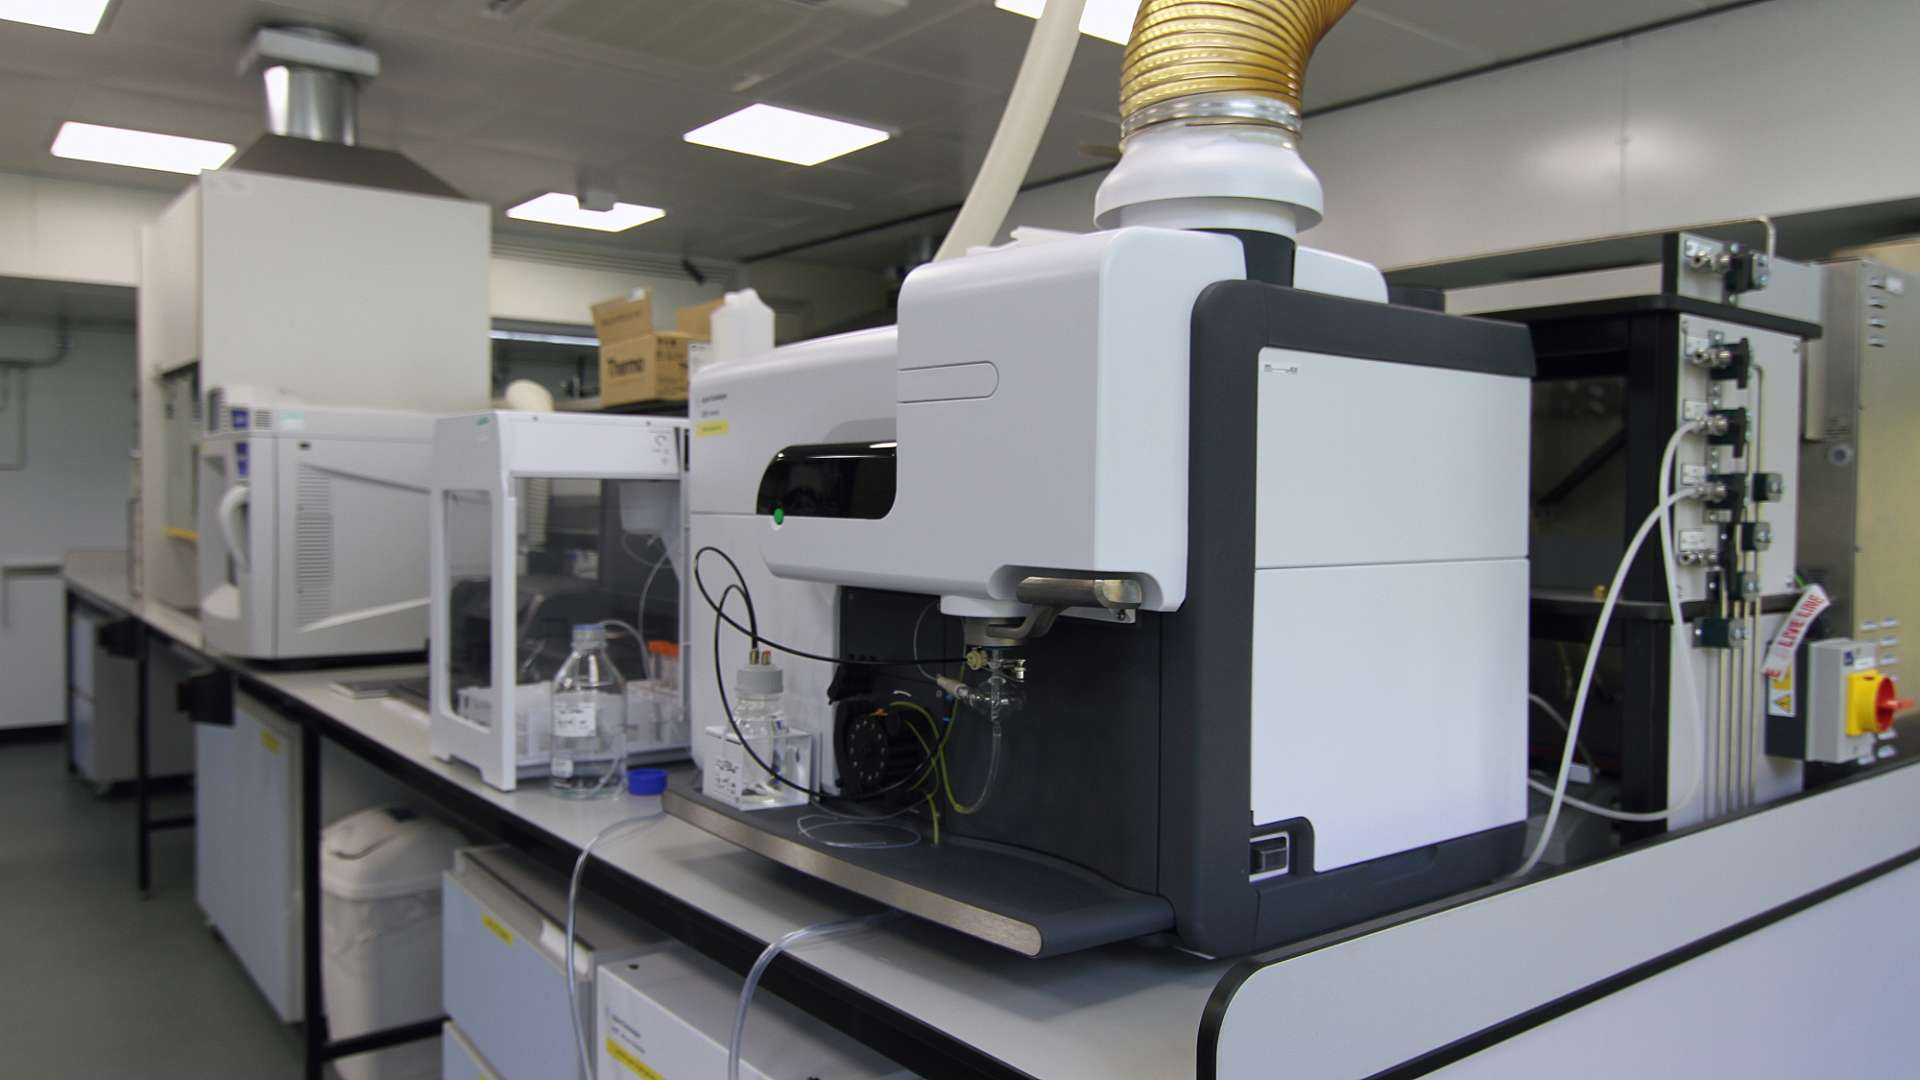 The Microwave Plasma Autonomic Emission Spectroscopy apparatus at CPI's facility at Wilton, Redcar